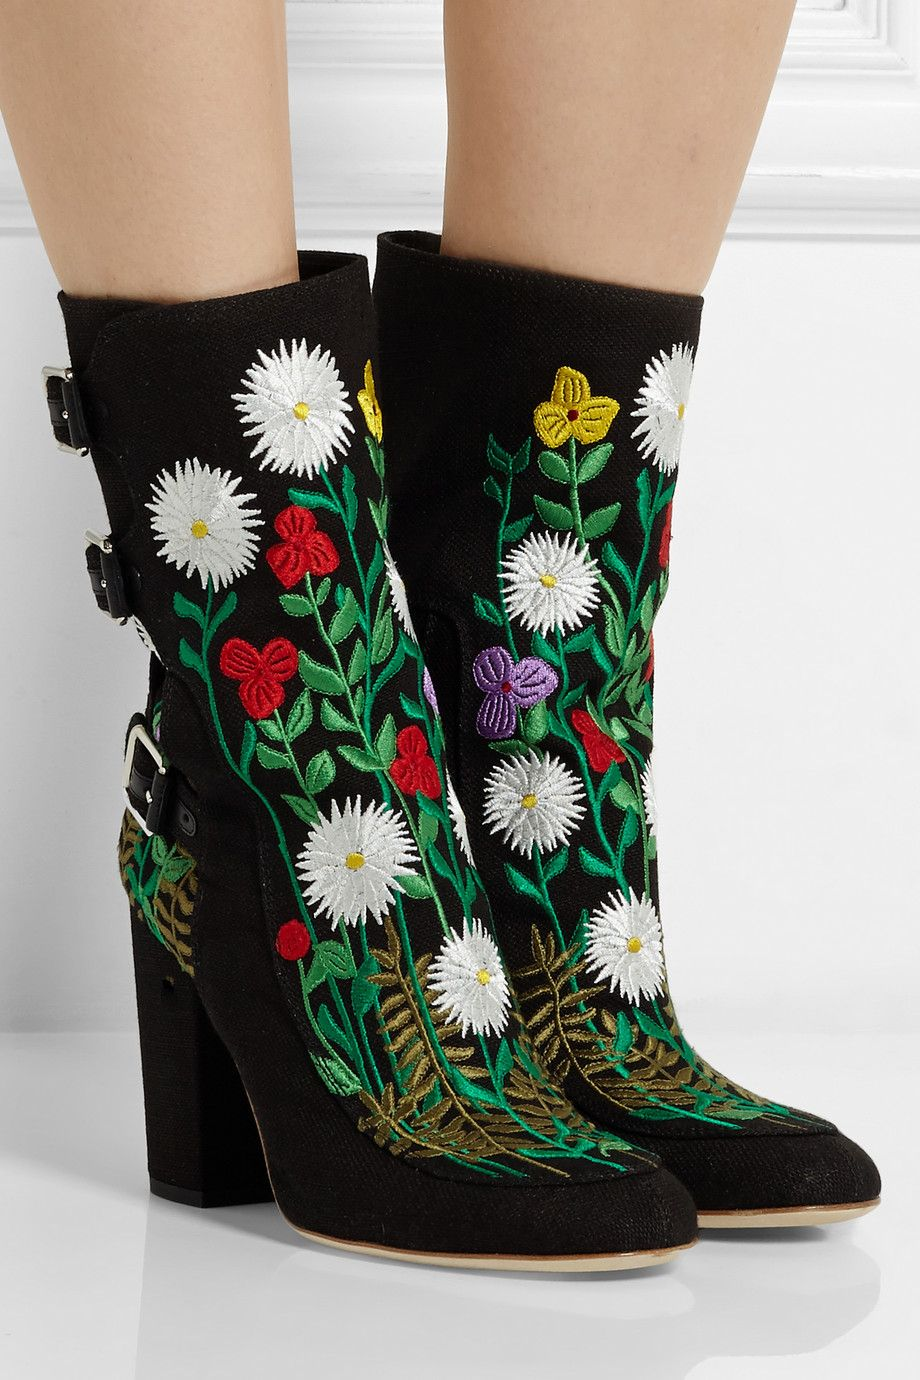 LAURENCE DACADE Embroidered flower ankle boots Classic Online Ebay Sale Affordable Brand New Unisex EkK2g9p